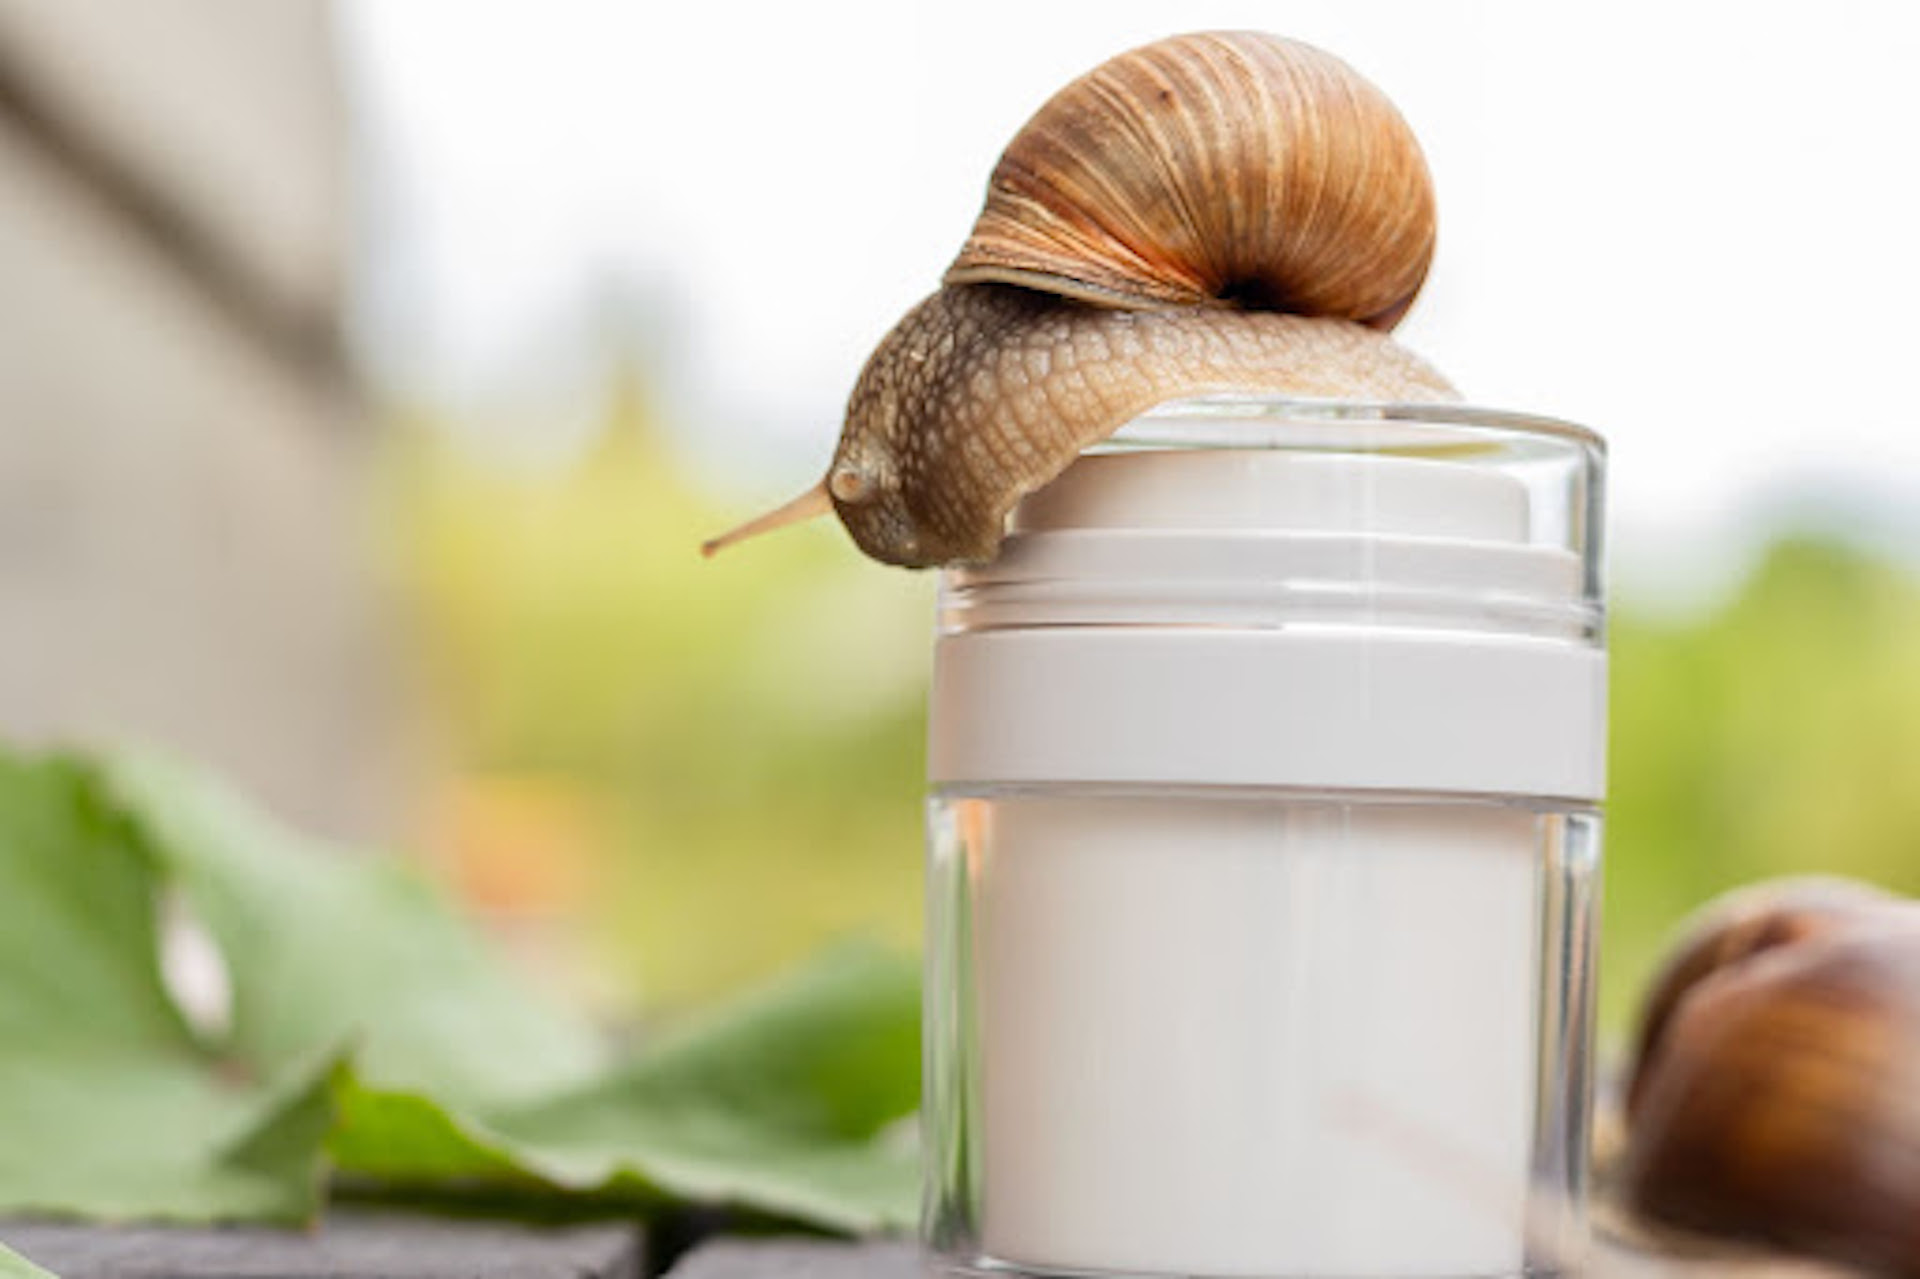 Snail on a bottle of face cream